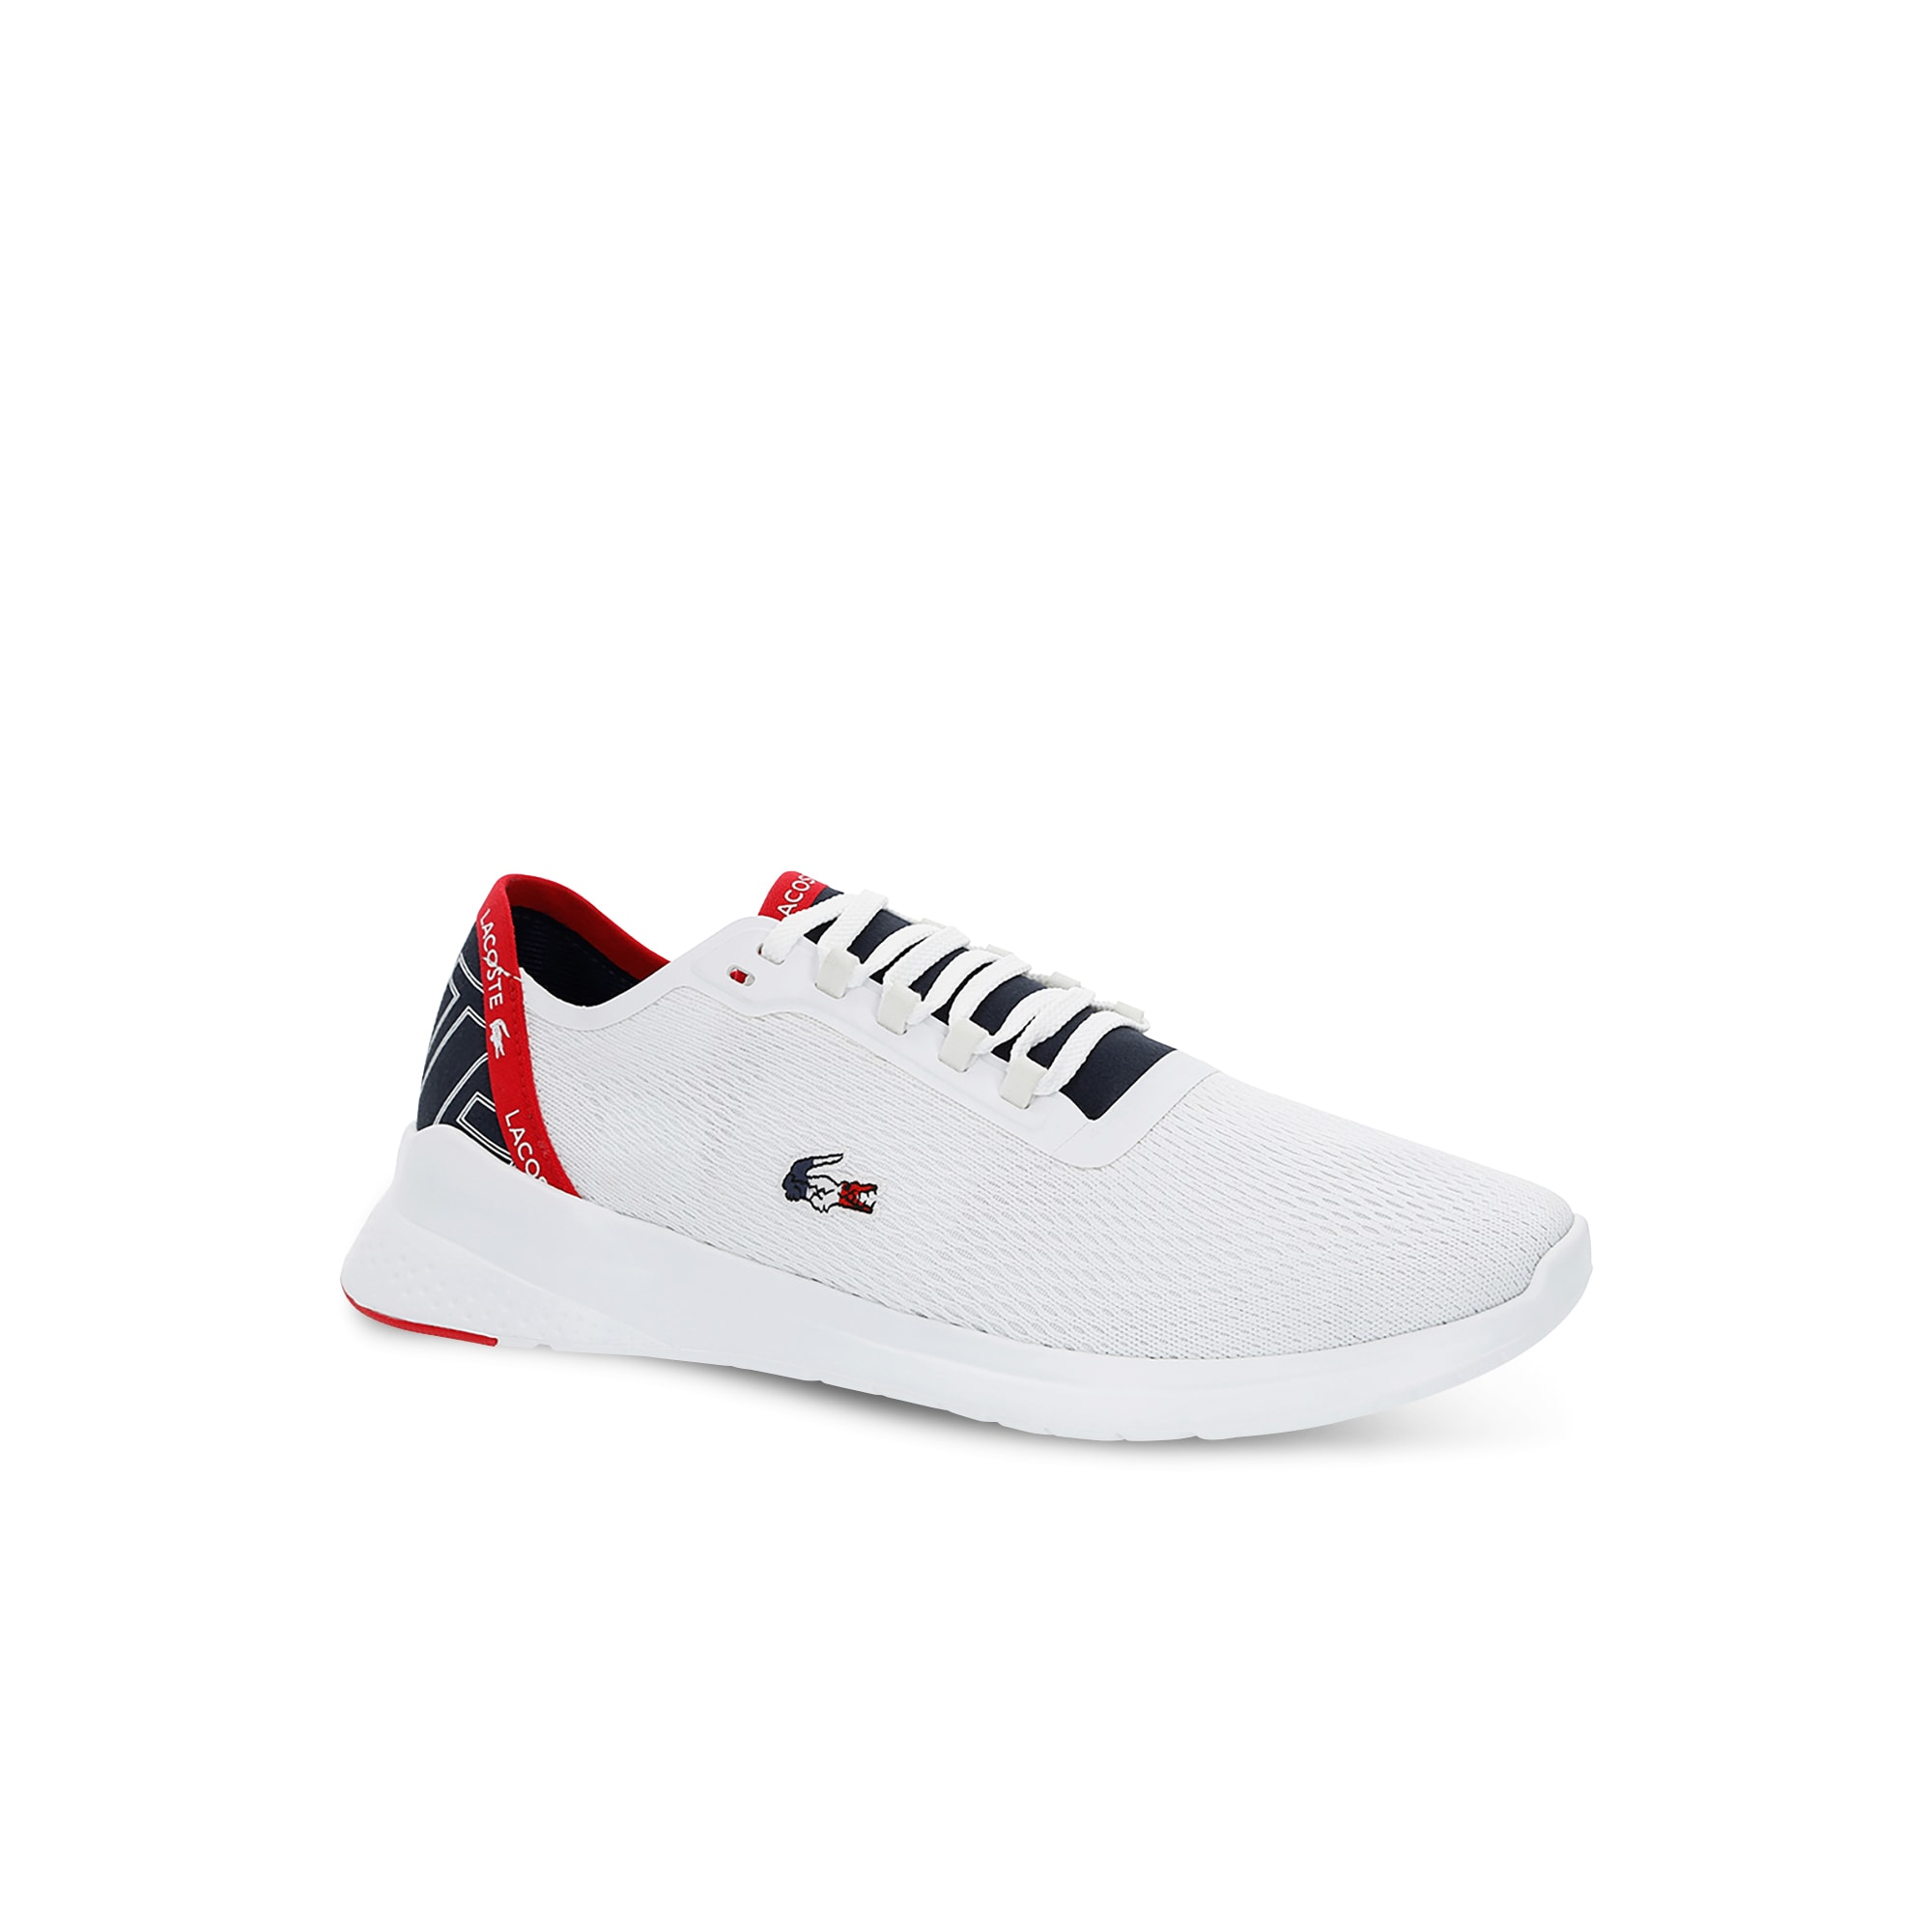 85aea54758a52 Men s LT Fit Sneakers with Tricolor Croc.  110.00. Lacoste ...